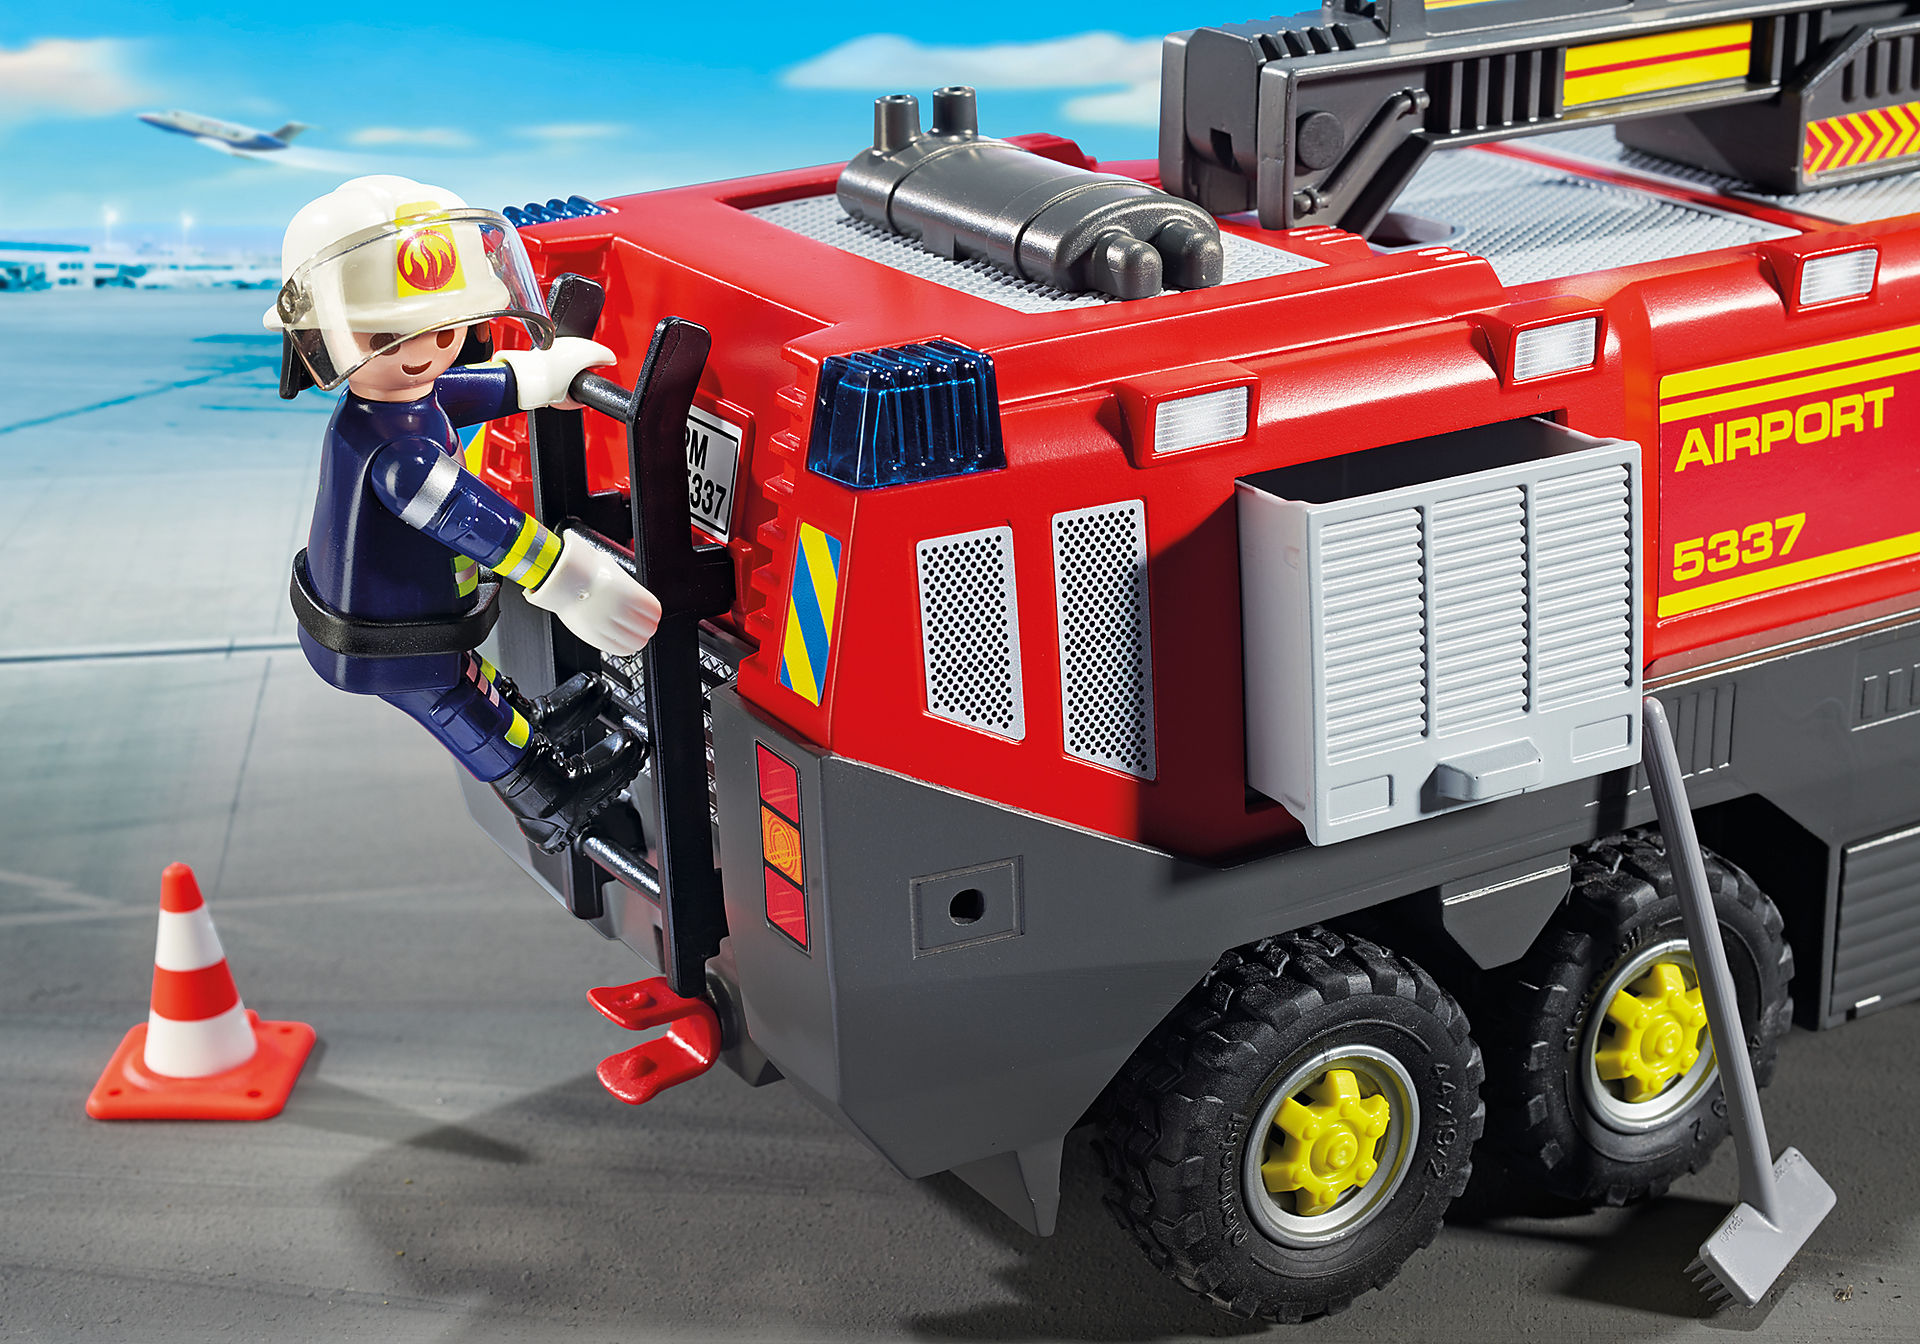 5337 Airport Fire Engine with Lights and Sound zoom image6